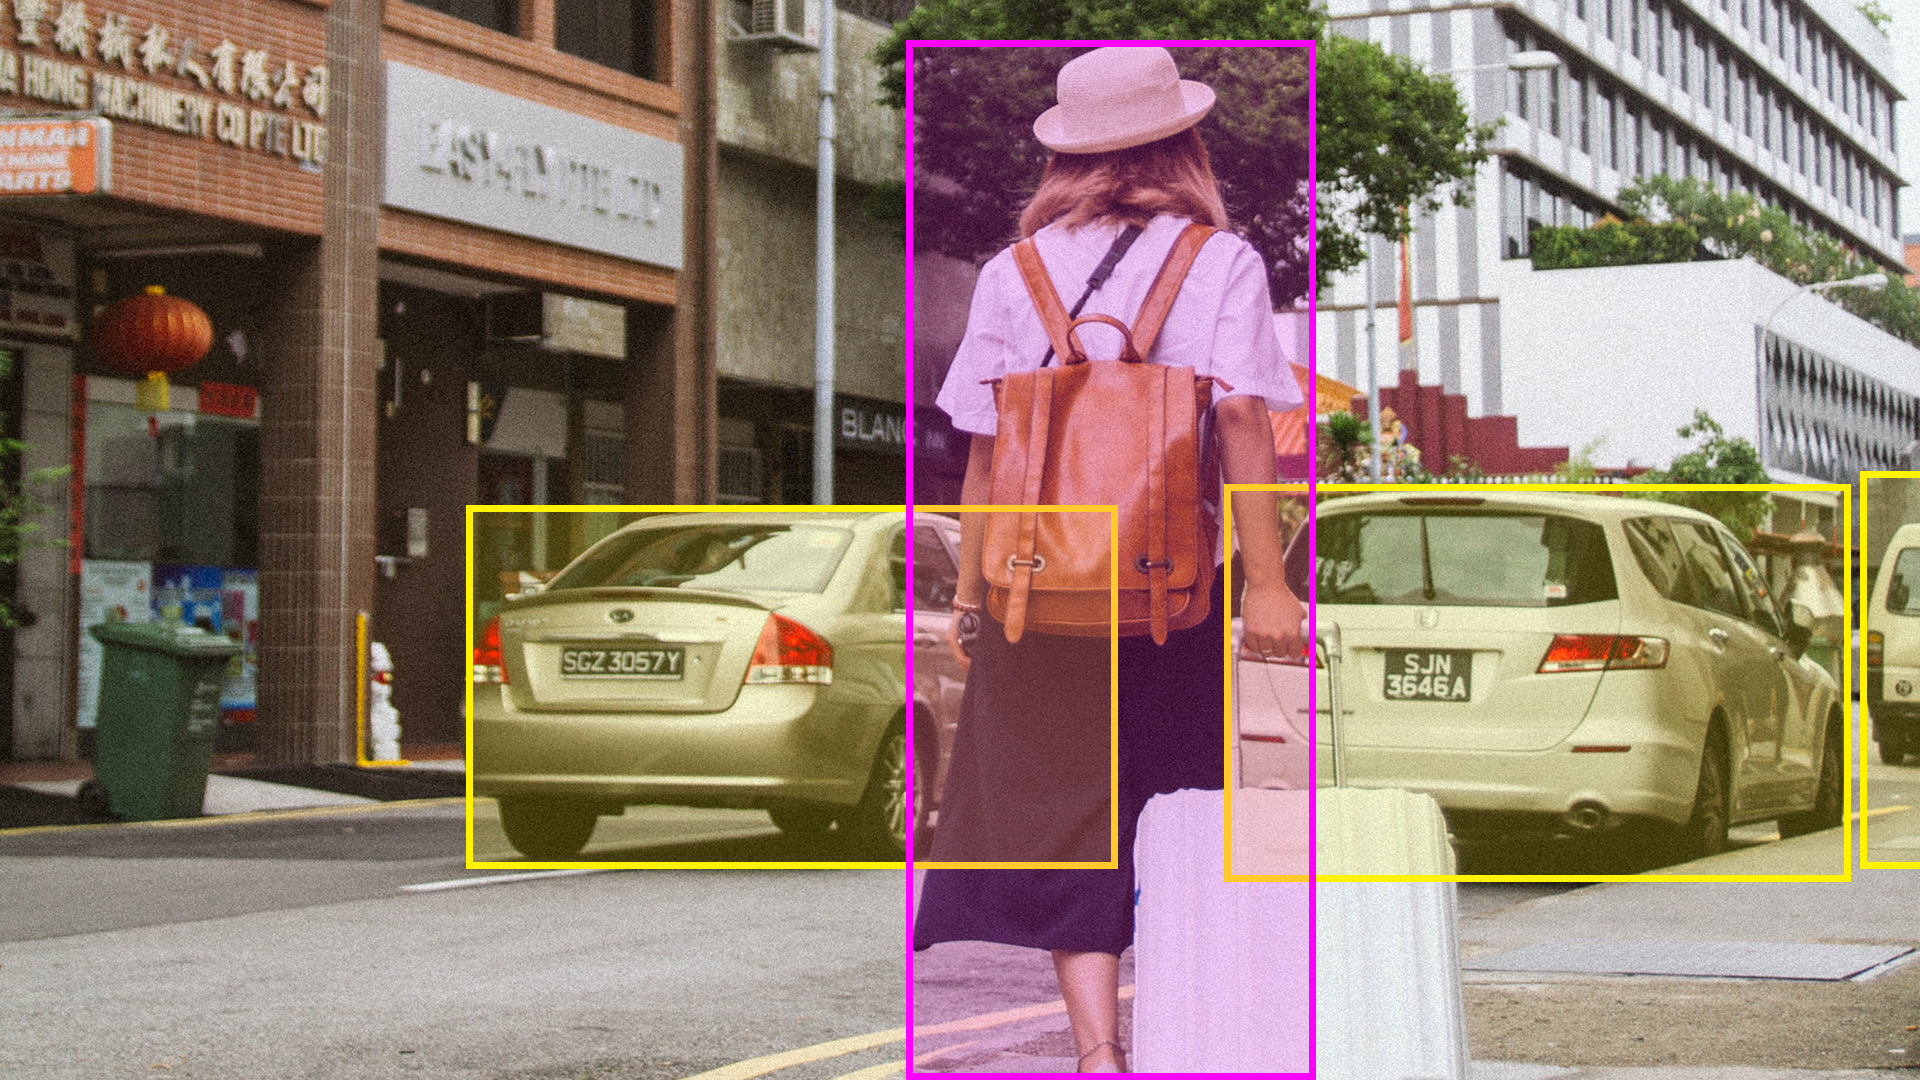 Object Recognition Image Annotation